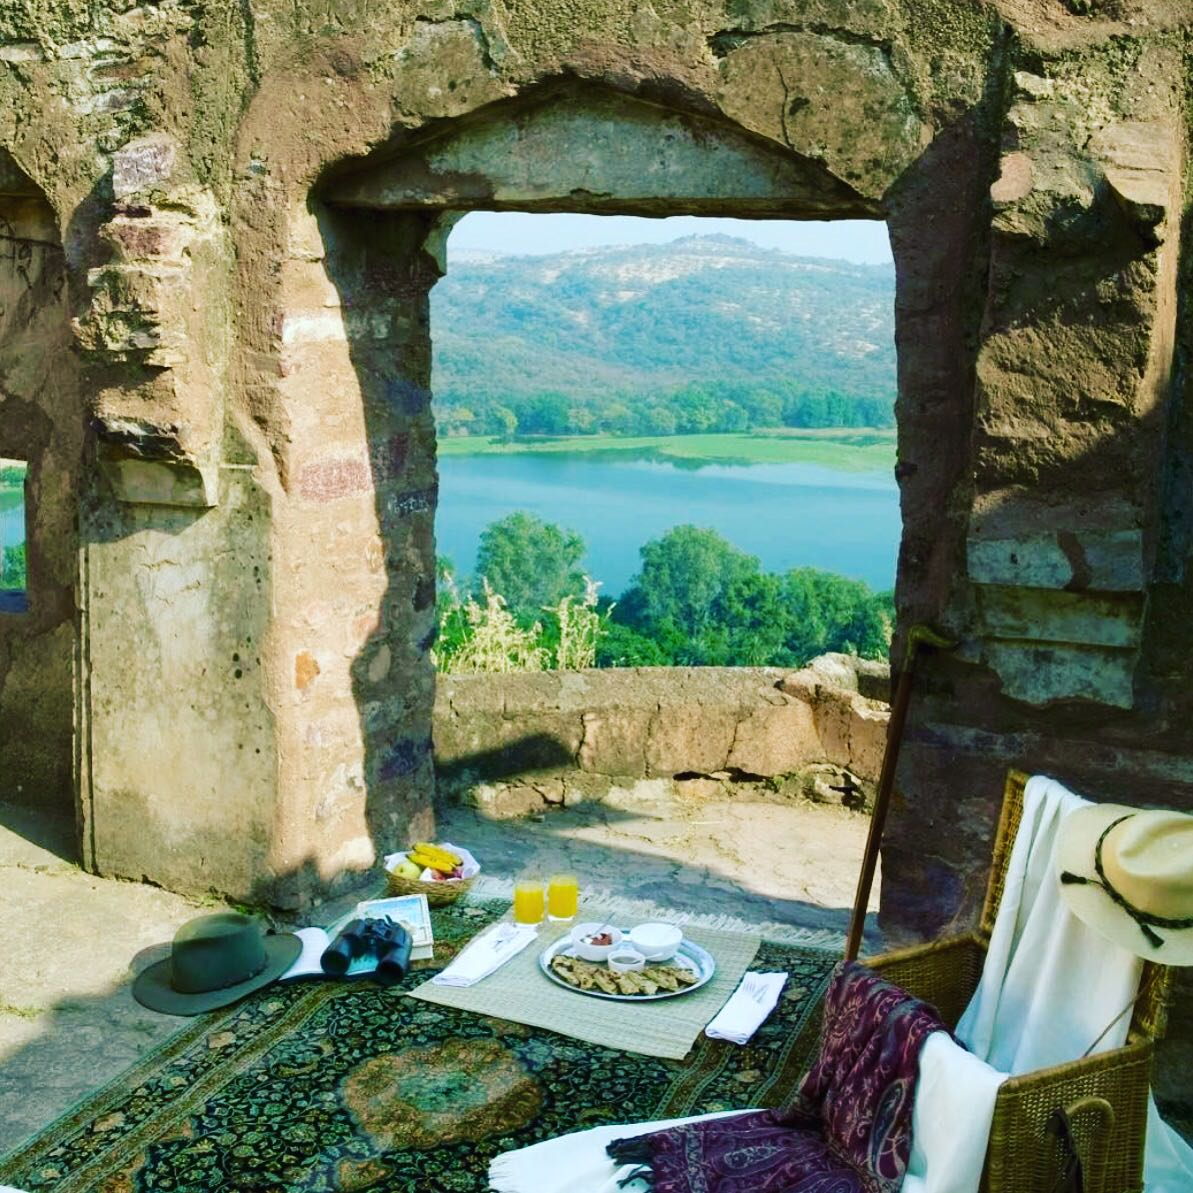 Aman-I-Khas; A haven where wildlife and 7-star luxury, embrace ...